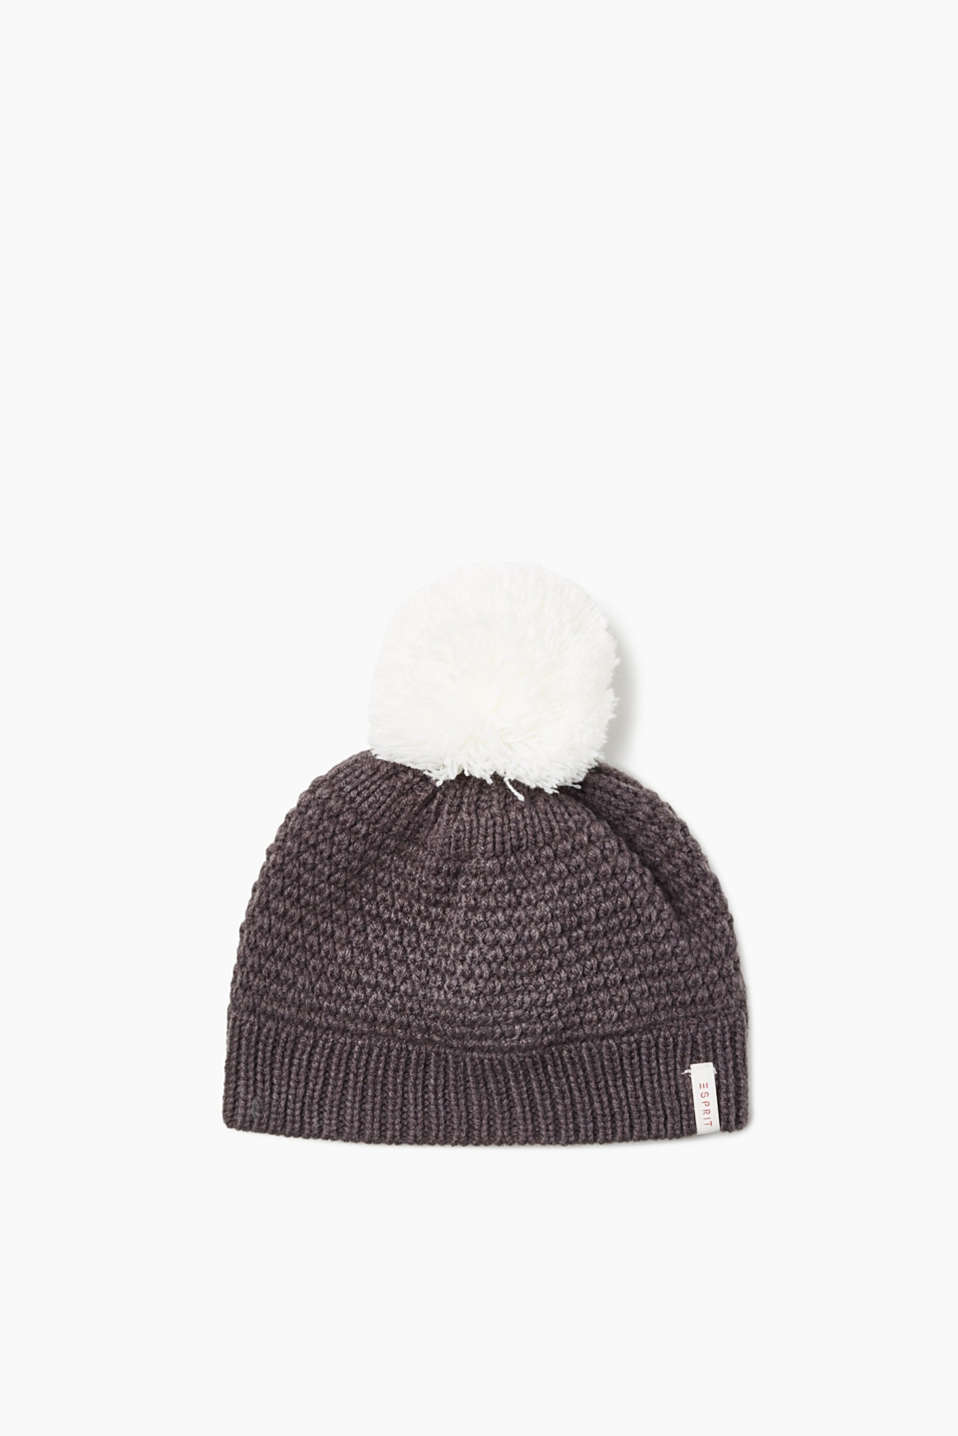 Esprit - Knit bobble hat with fleece lining